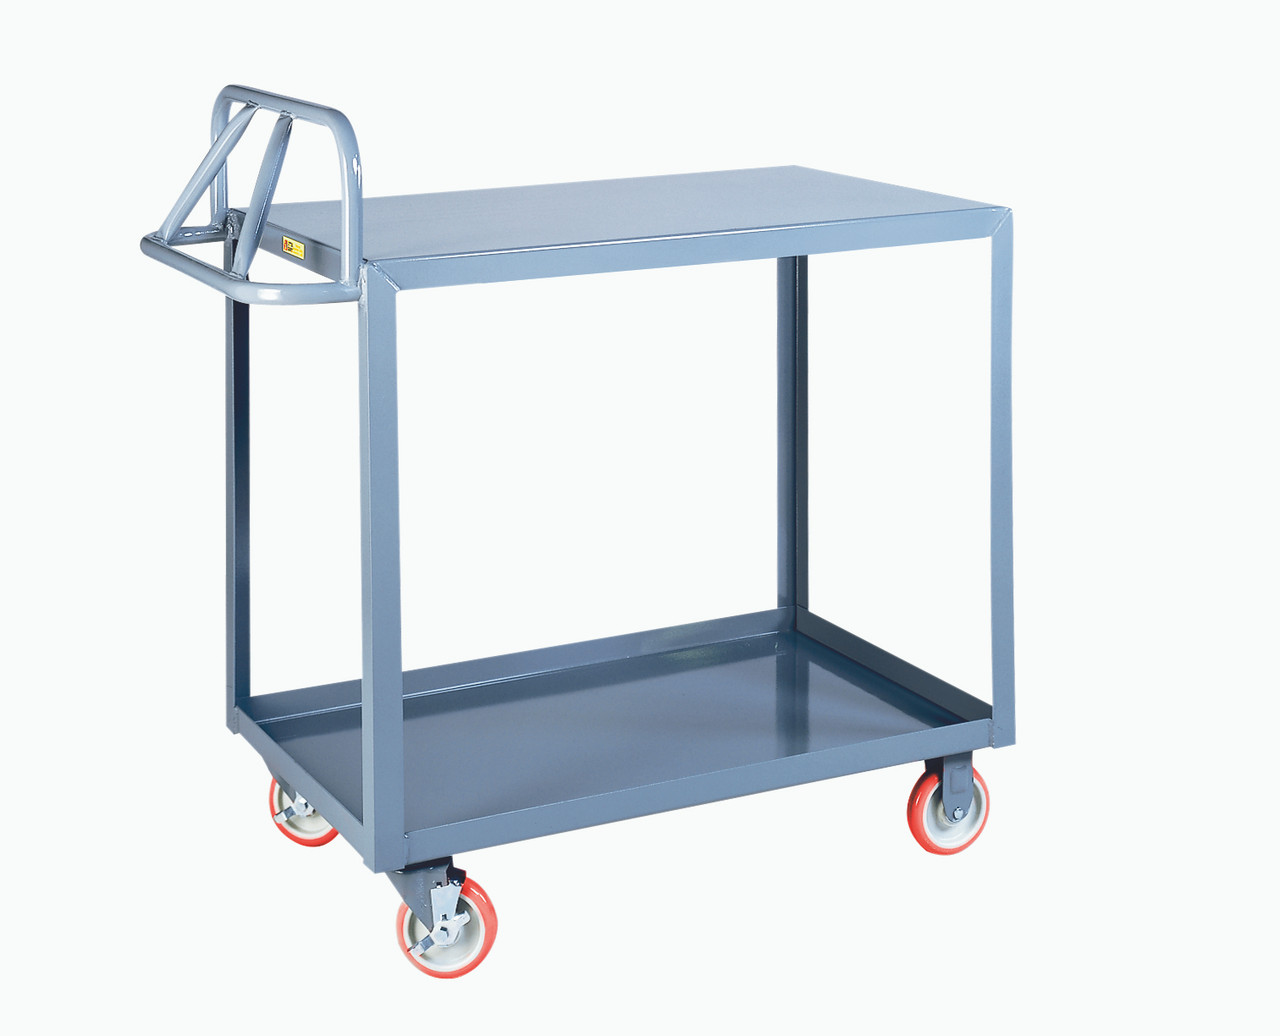 Ergonomic Shelf Trucks